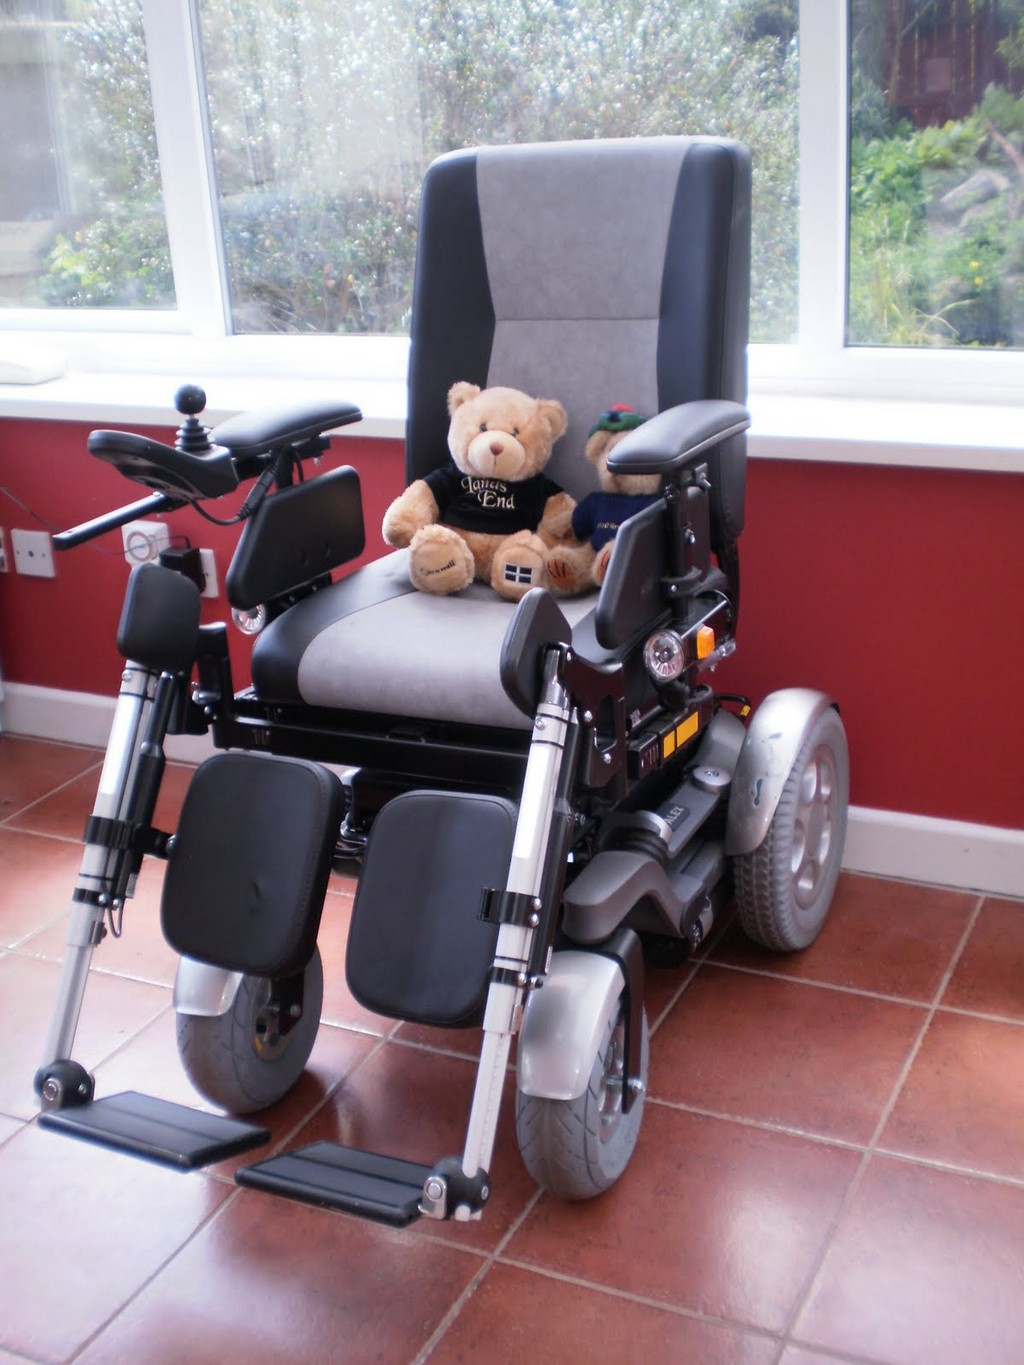 pronto power wheel chair, merits electric wheelchair, power wheelchairs rentals naples area, jet 2 power wheelchair pdf